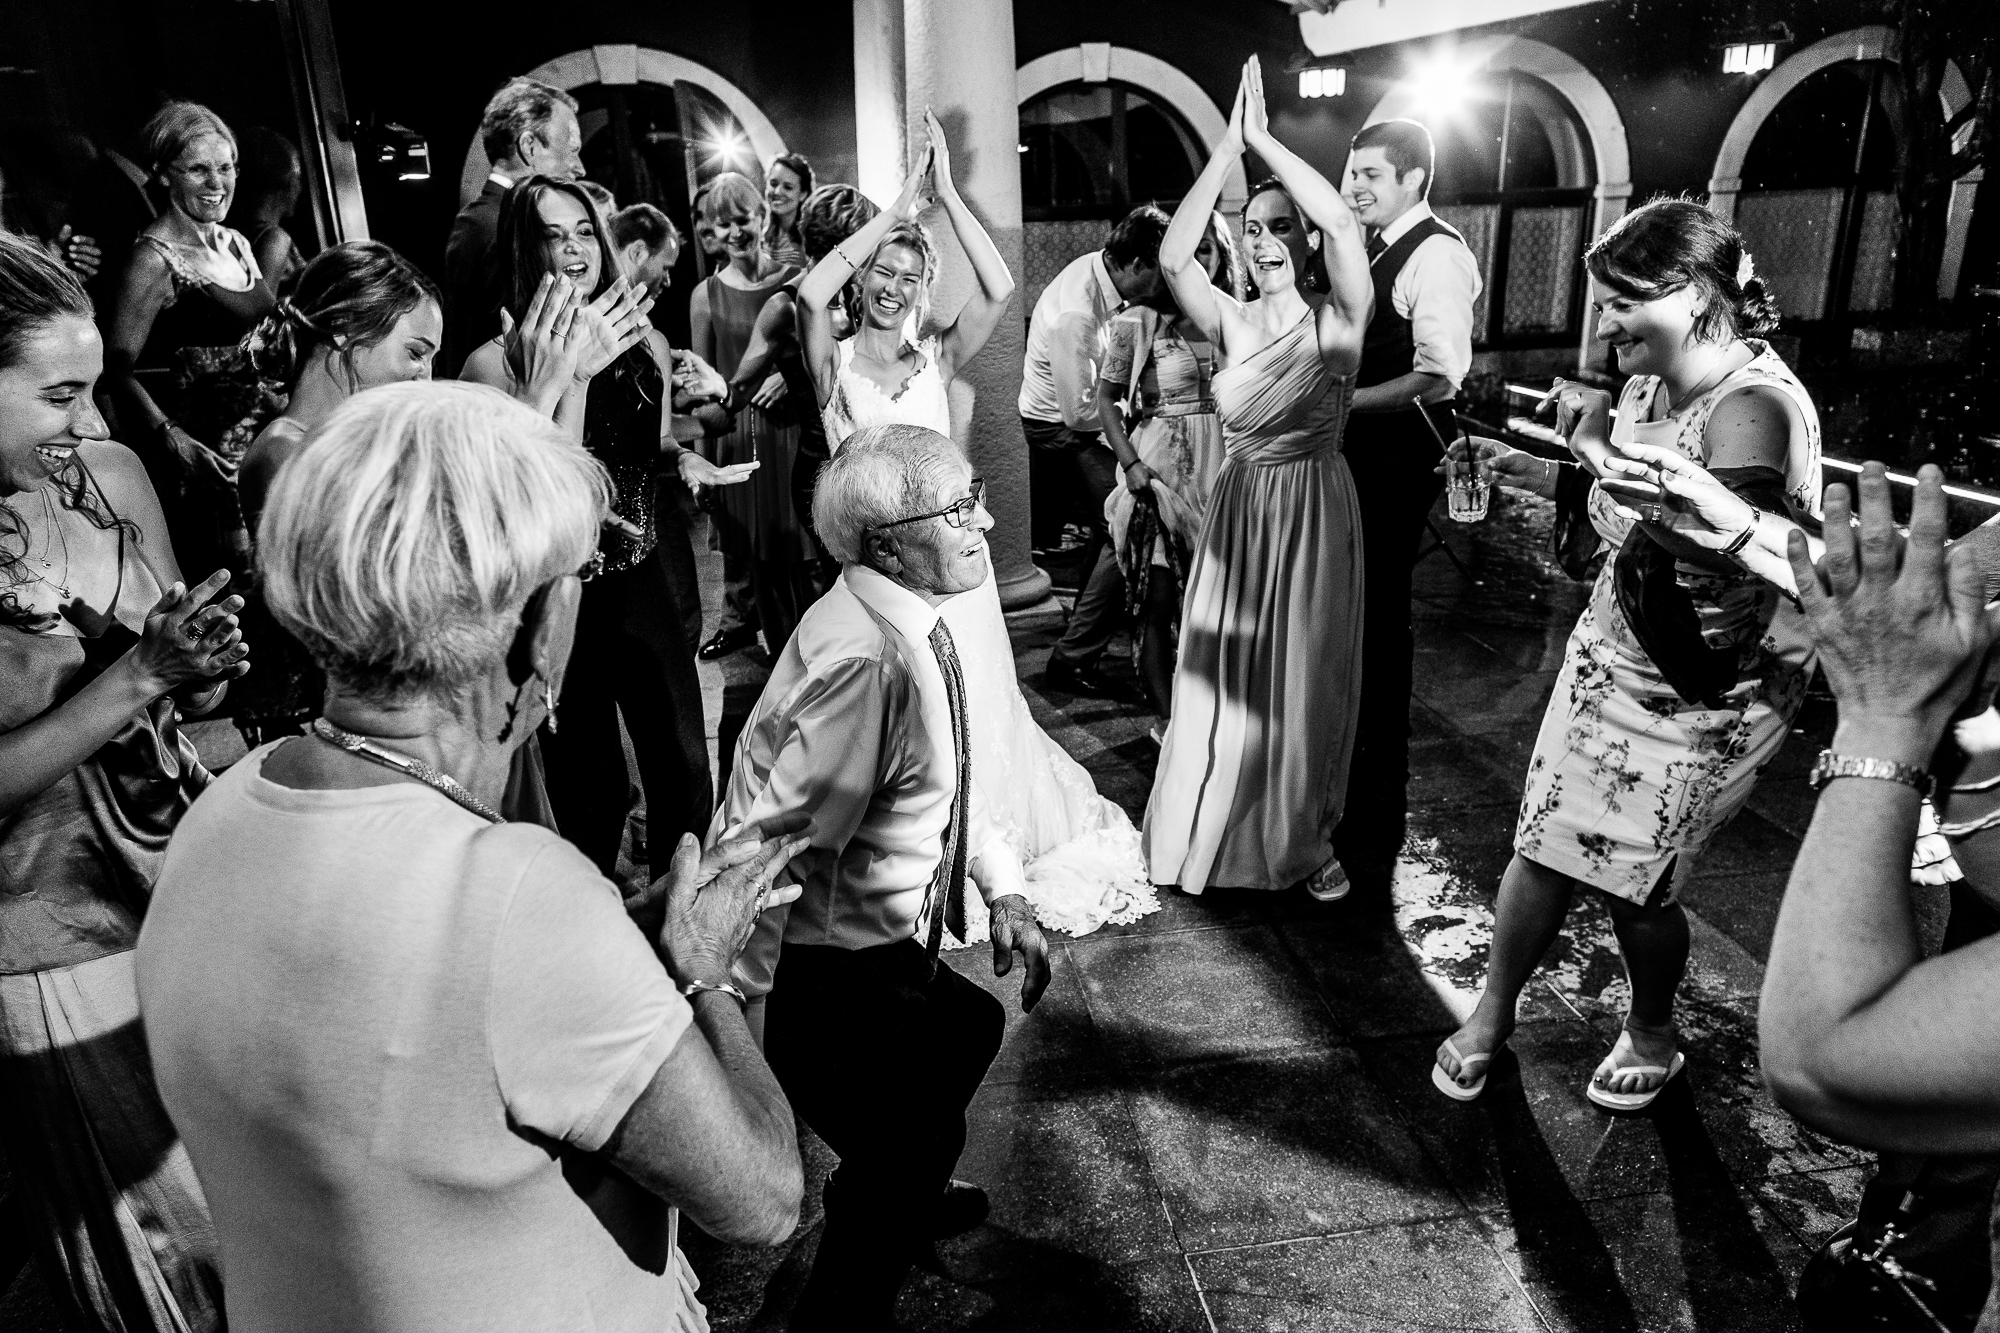 Party, dance floor, hochzeit, wedding, dream wedding, lake garda, schwarz weiß, reportage, fotografie, music, rythmen, excited,